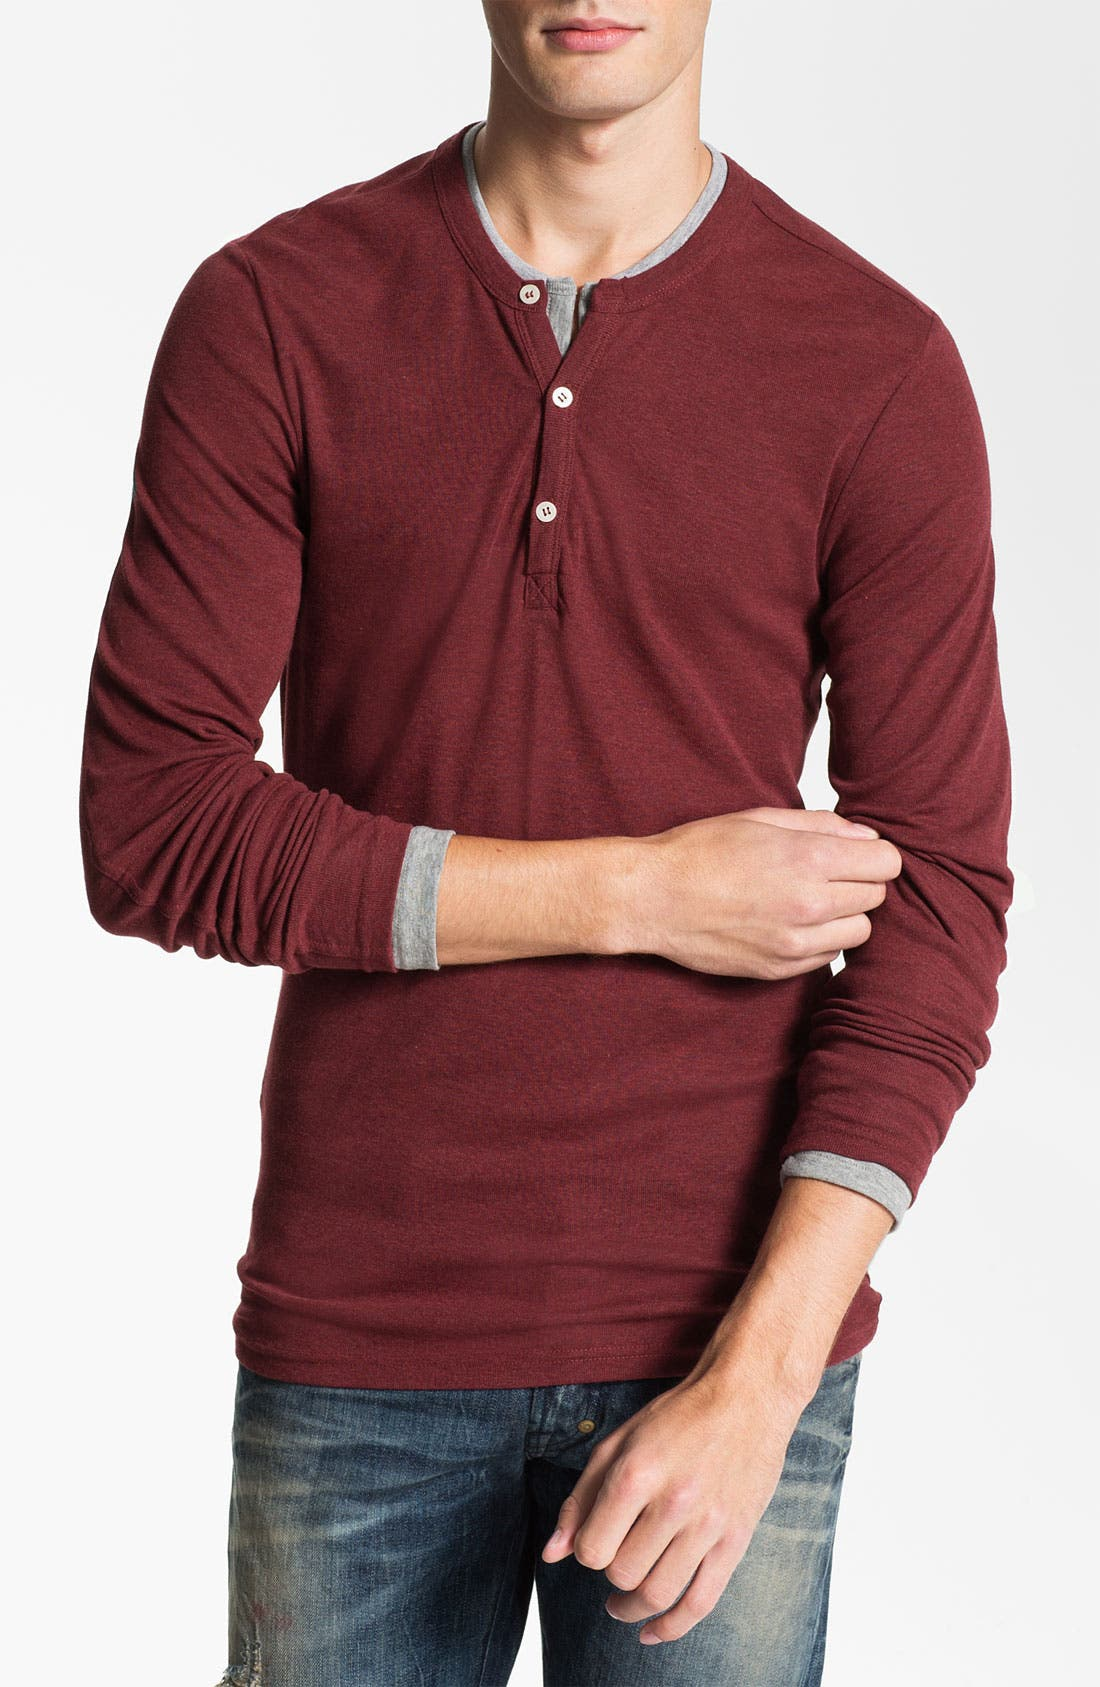 Alternate Image 1 Selected - J.C. Rags Extra Trim Fit Long Sleeve Henley